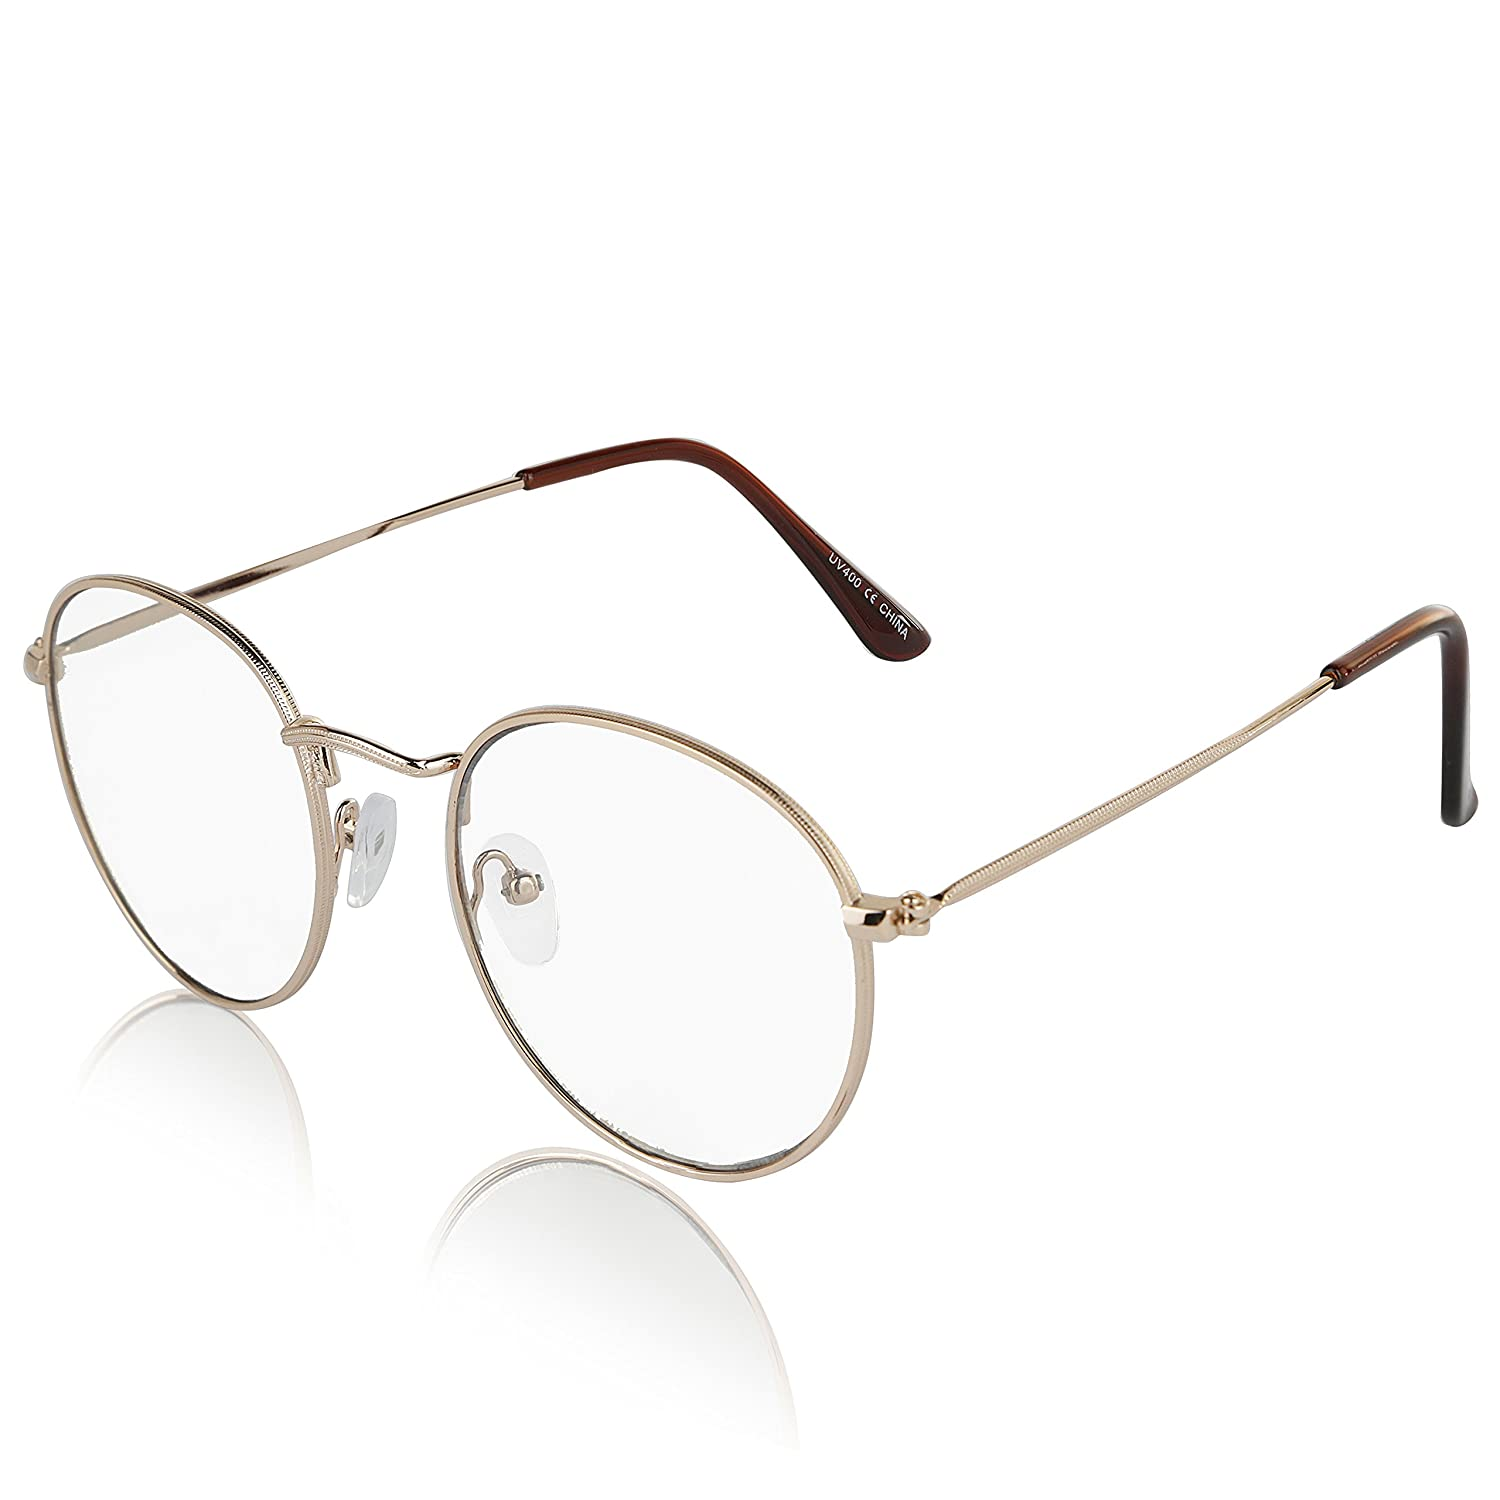 81d2a2401c Amazon.com  Non Prescription Retro Fake Clear Lens Gold Metal Frame  Eyeglasses Woman UV400  Clothing